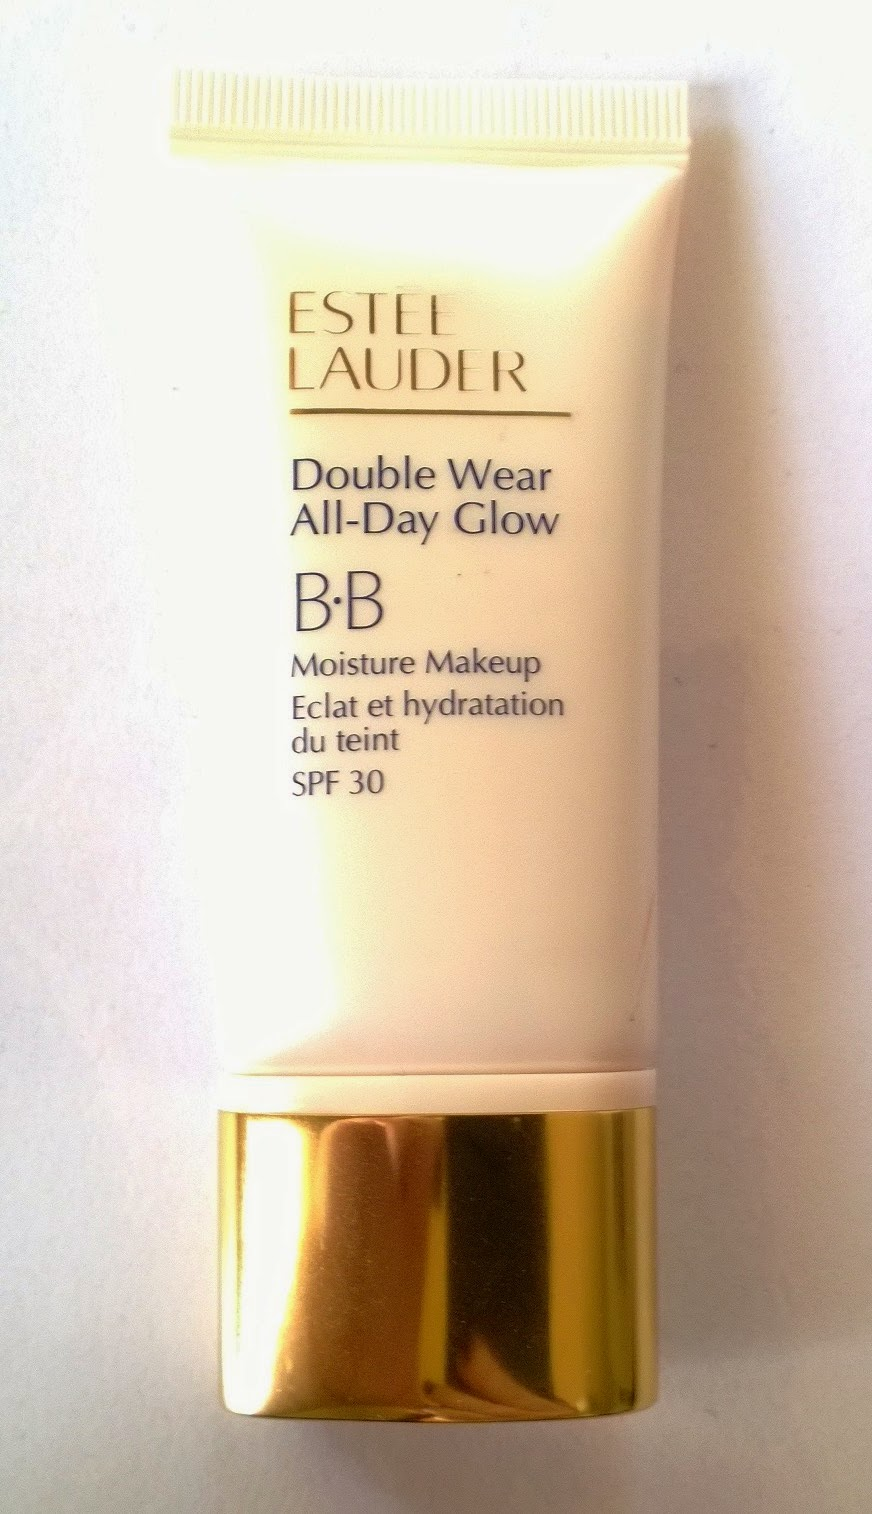 Estee Lauder Double Wear All-Day Glow